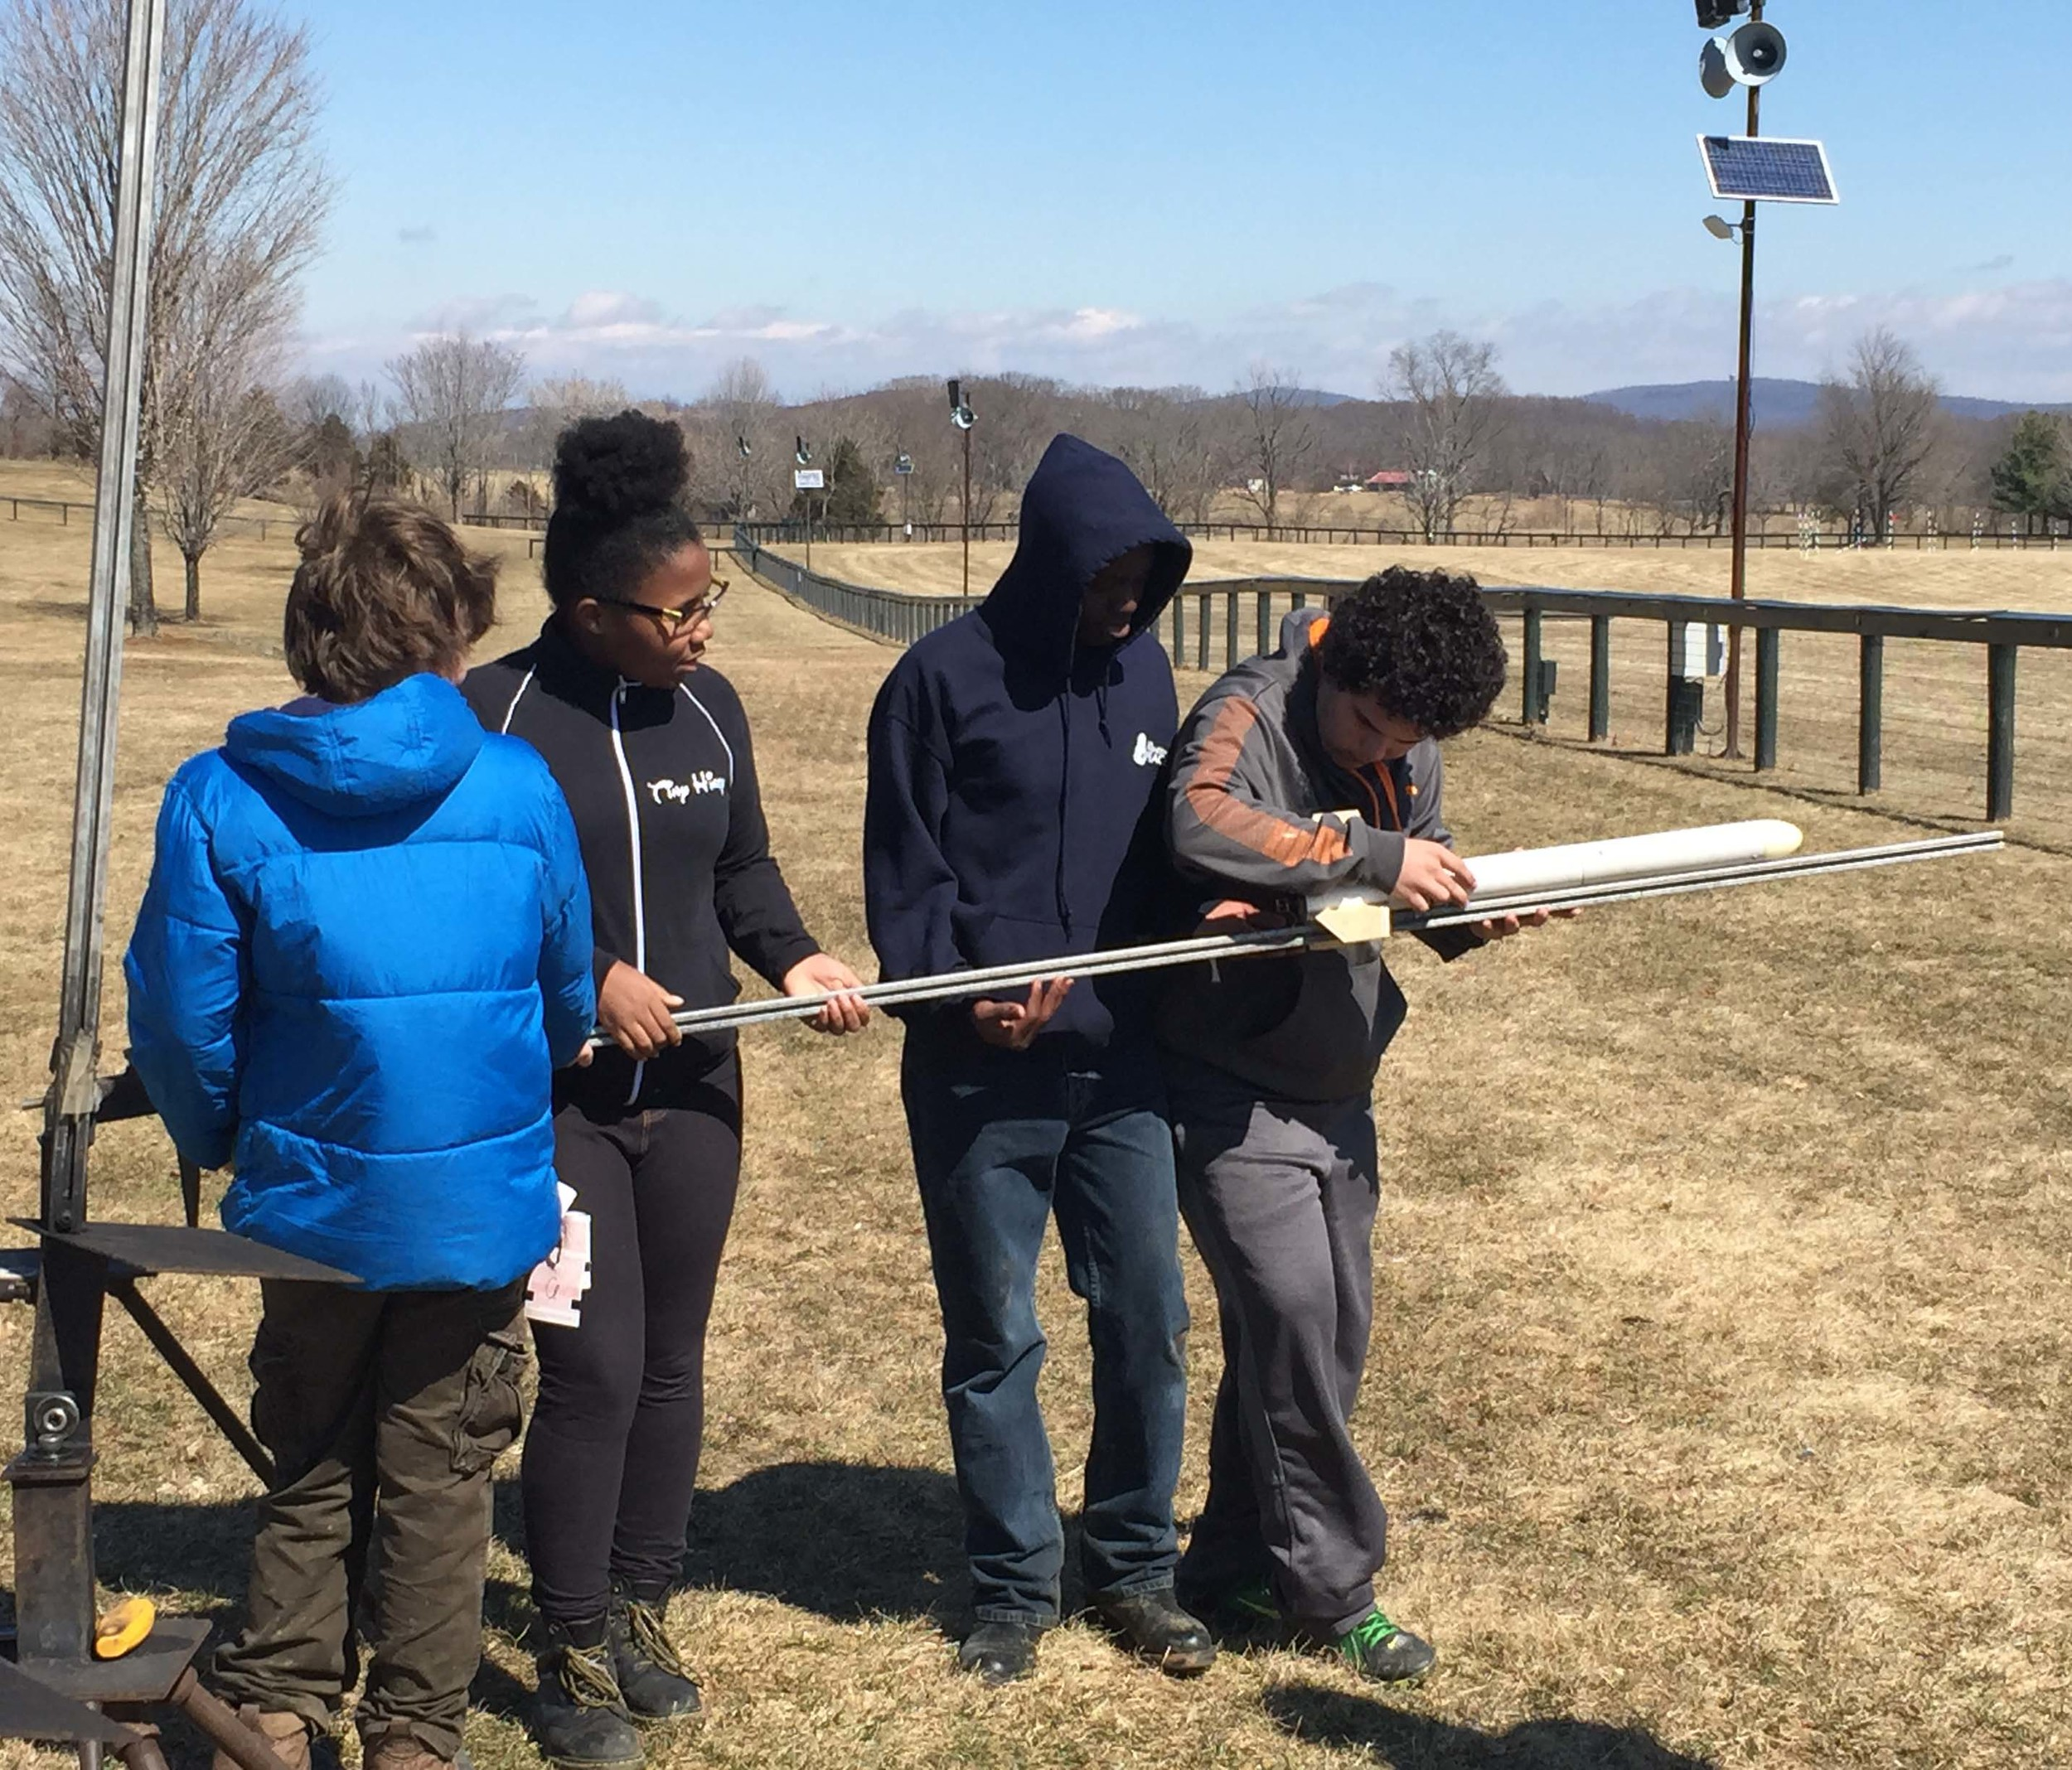 Collaborative team efforts get the rocket set up for a trial launch at The Plains, VA.